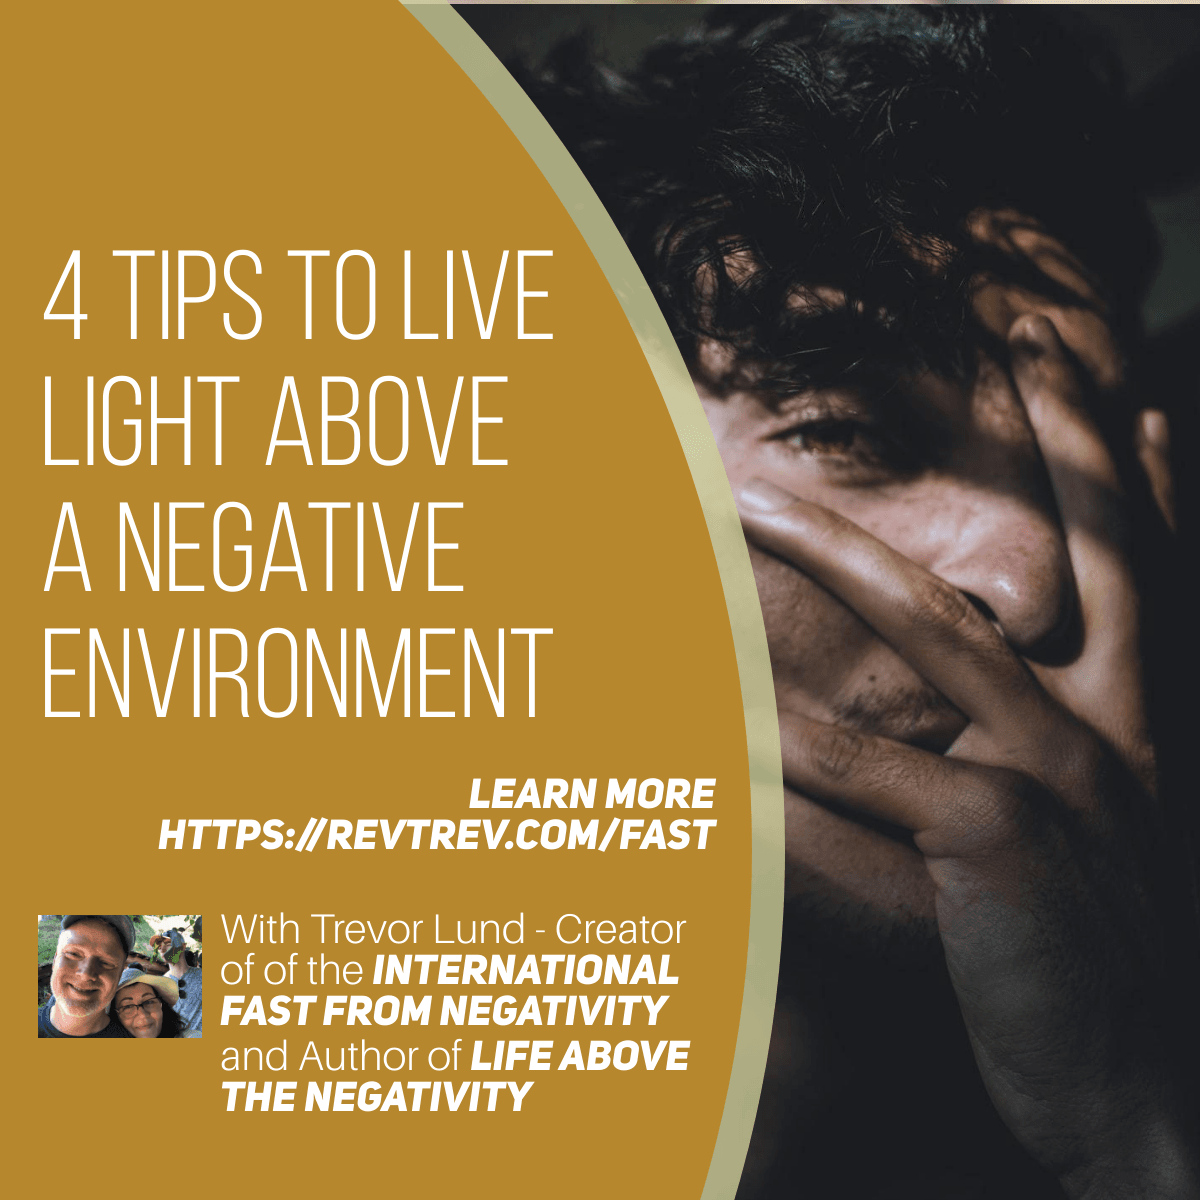 4 Tips to Live LIGHT Above a Negative Environment via @trevorlund